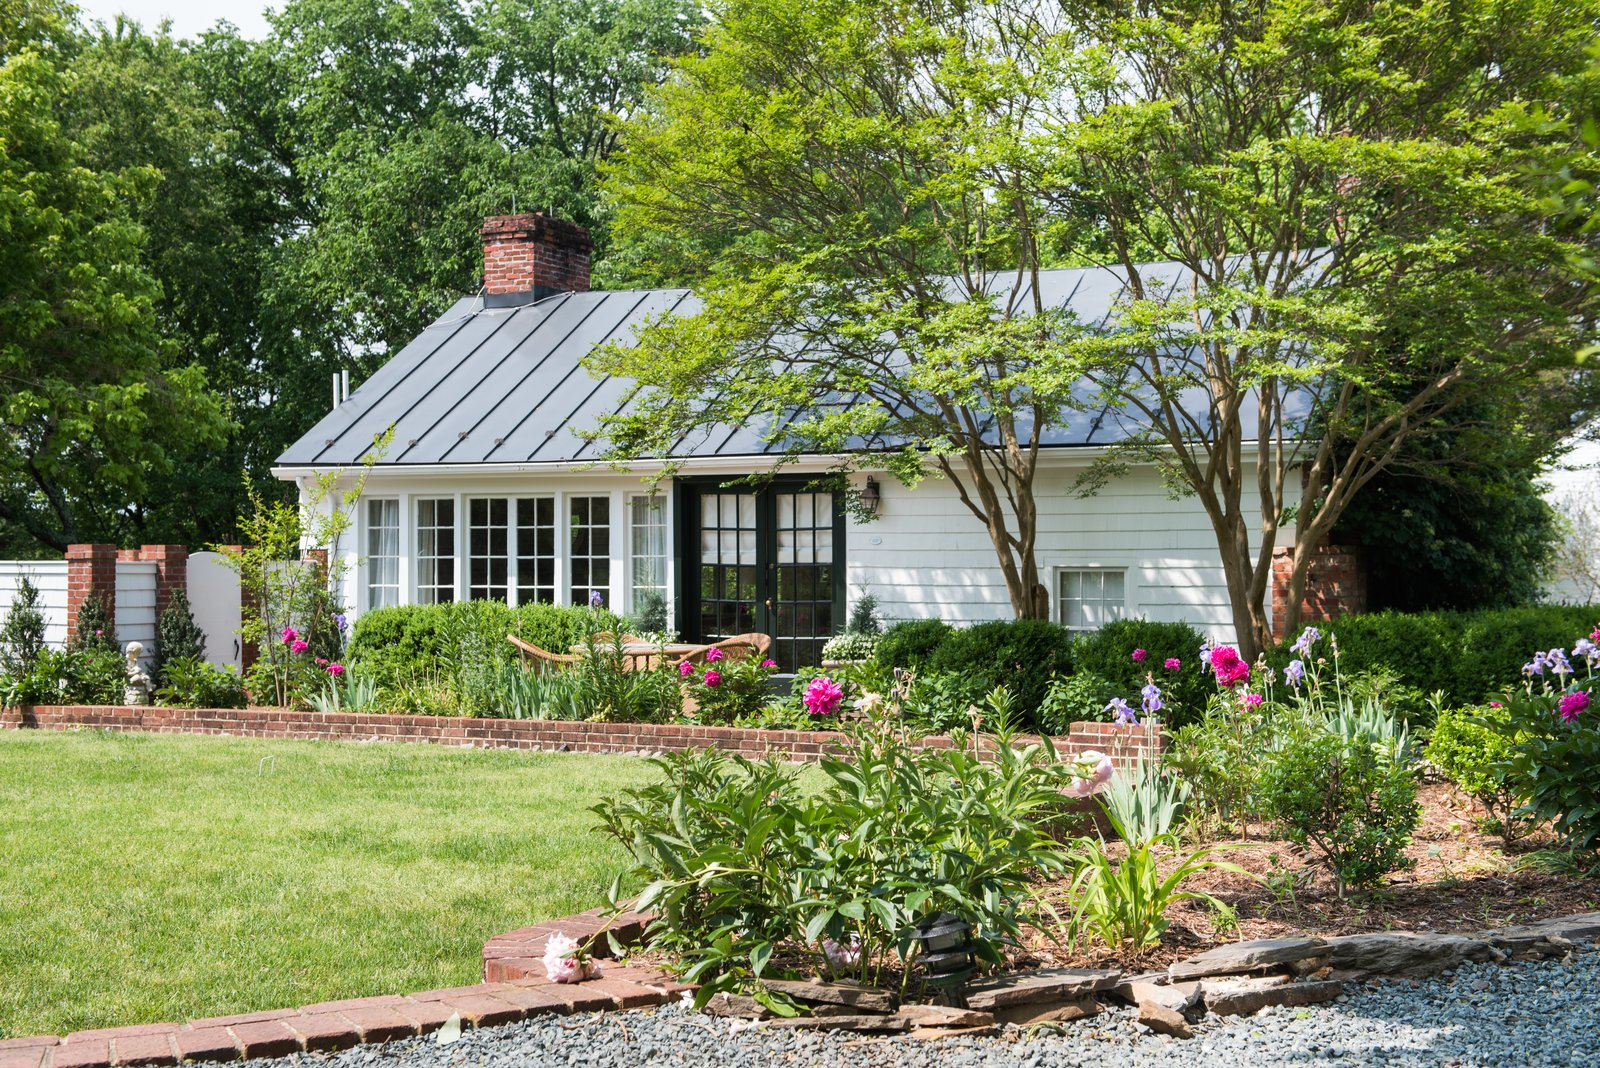 Exterior, Metal, Wood, Small Home, Gable, and House The original carriage house was transformed into a bridal suite that now has three guest rooms.  Best Exterior Metal Wood Small Home Photos from An 18th-Century Virginian Hotel Boasts an Elegant New Look